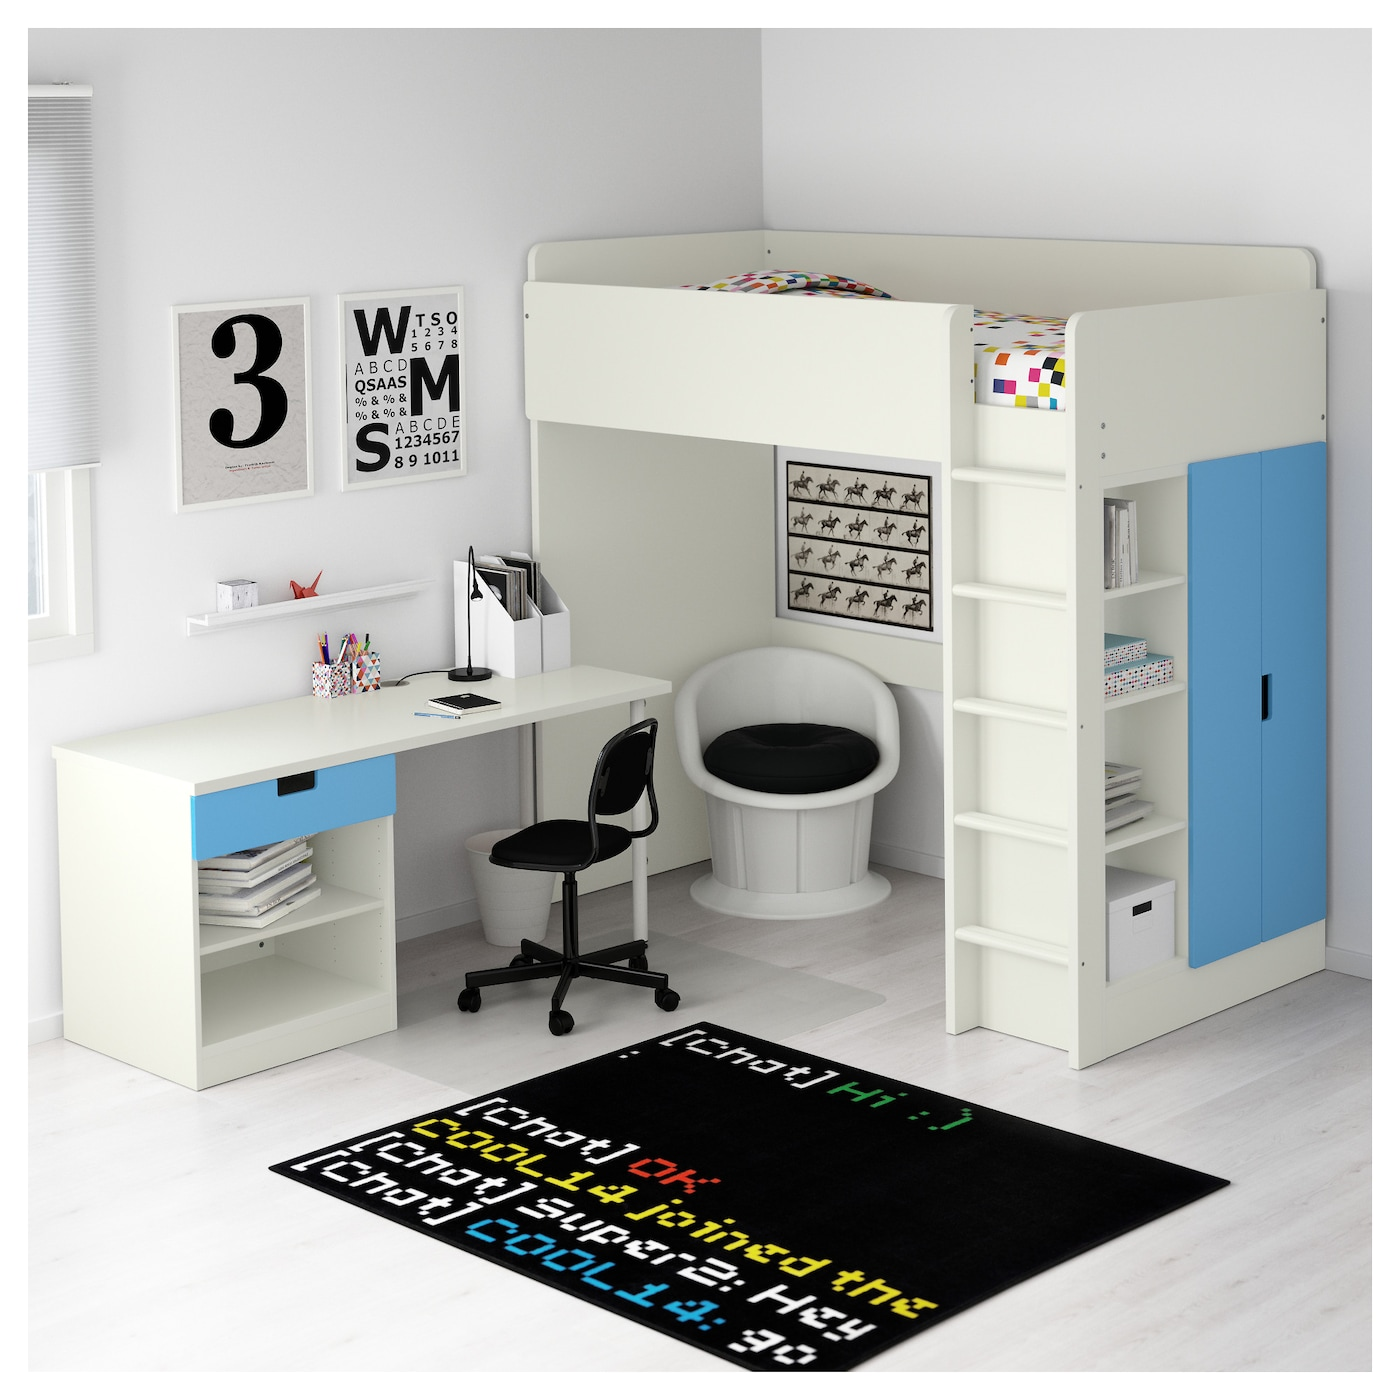 stuva combi lit mezz 1 tir 2 ptes blanc bleu 207x99x193 cm ikea. Black Bedroom Furniture Sets. Home Design Ideas